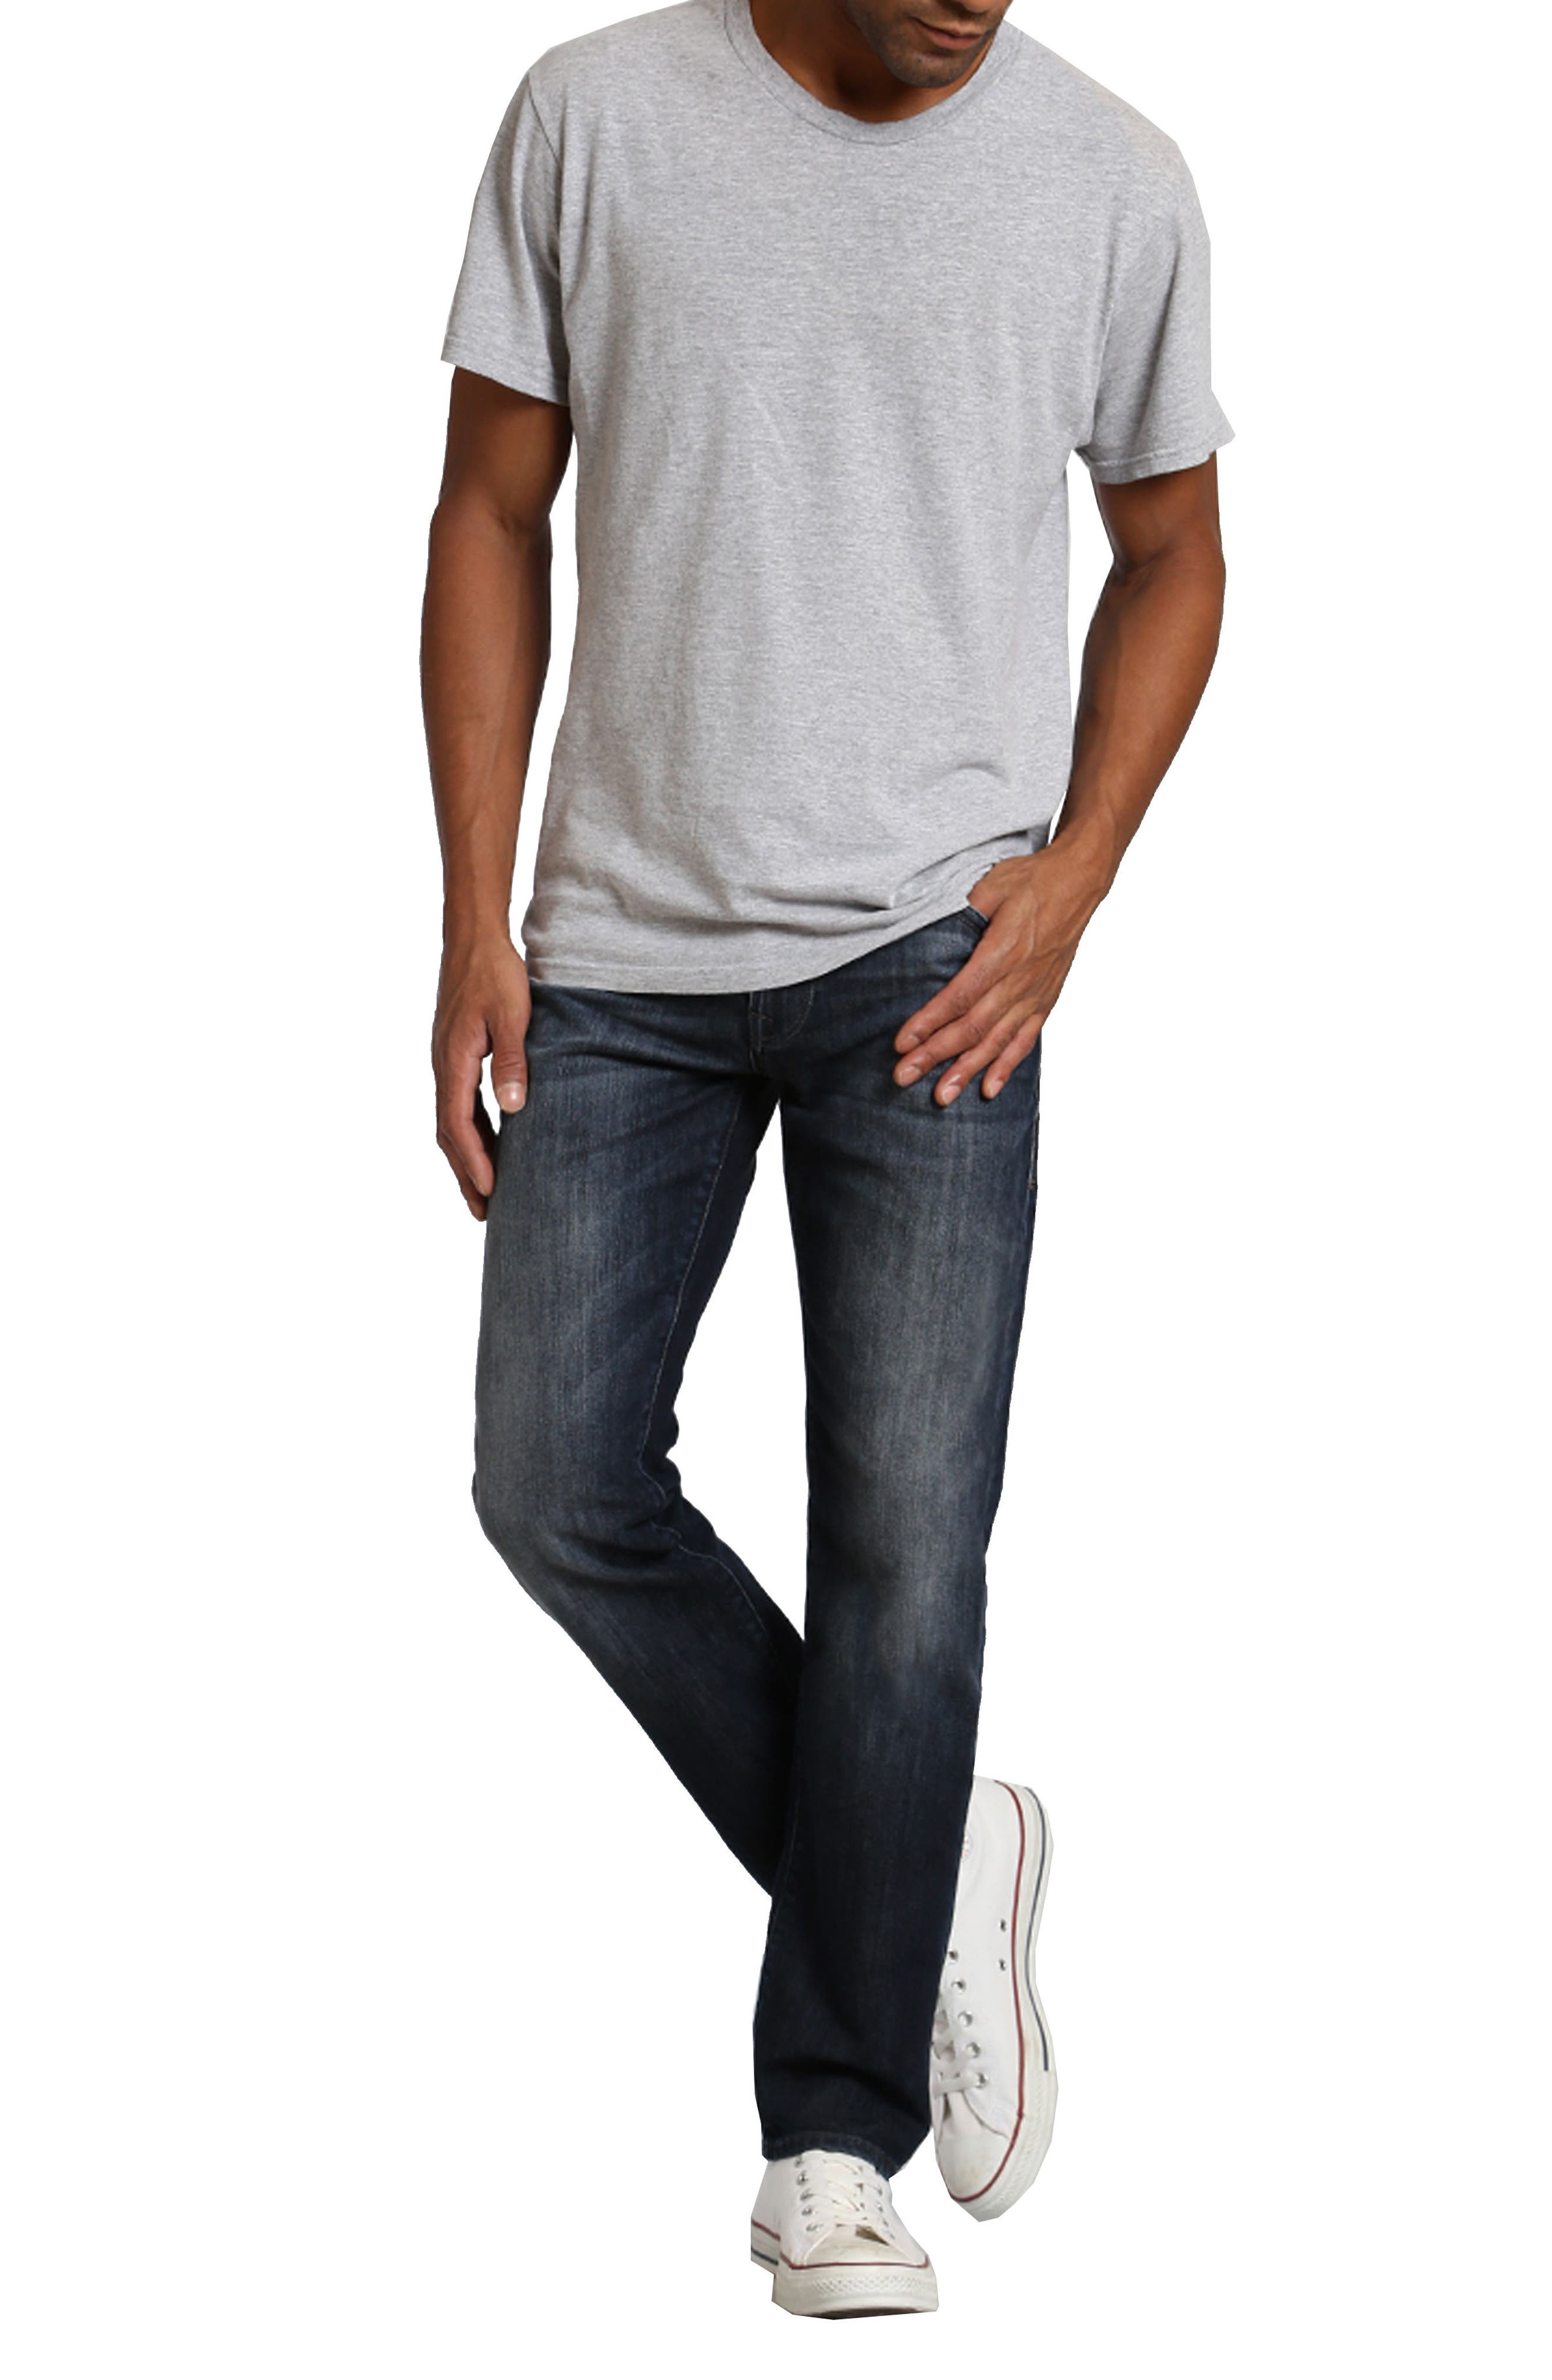 Zach Straight Leg Jeans,                             Alternate thumbnail 3, color,                             DEEP SHADED NEW YORK